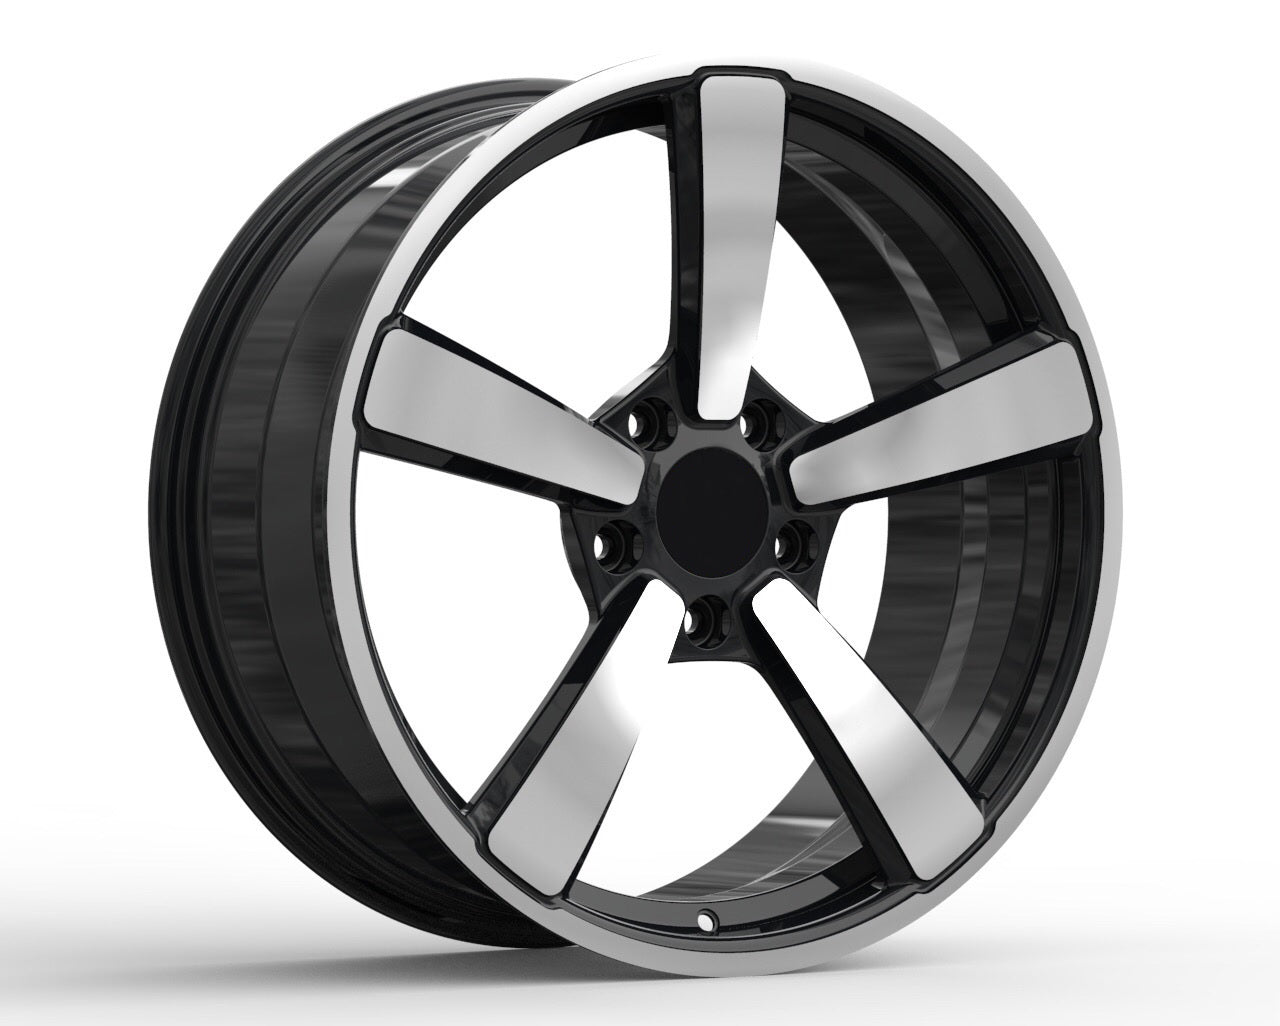 PN 226 - Aftermarket Custom Made Fully Forged Wheels Set To Fit Porsche 911 997 991 992 718